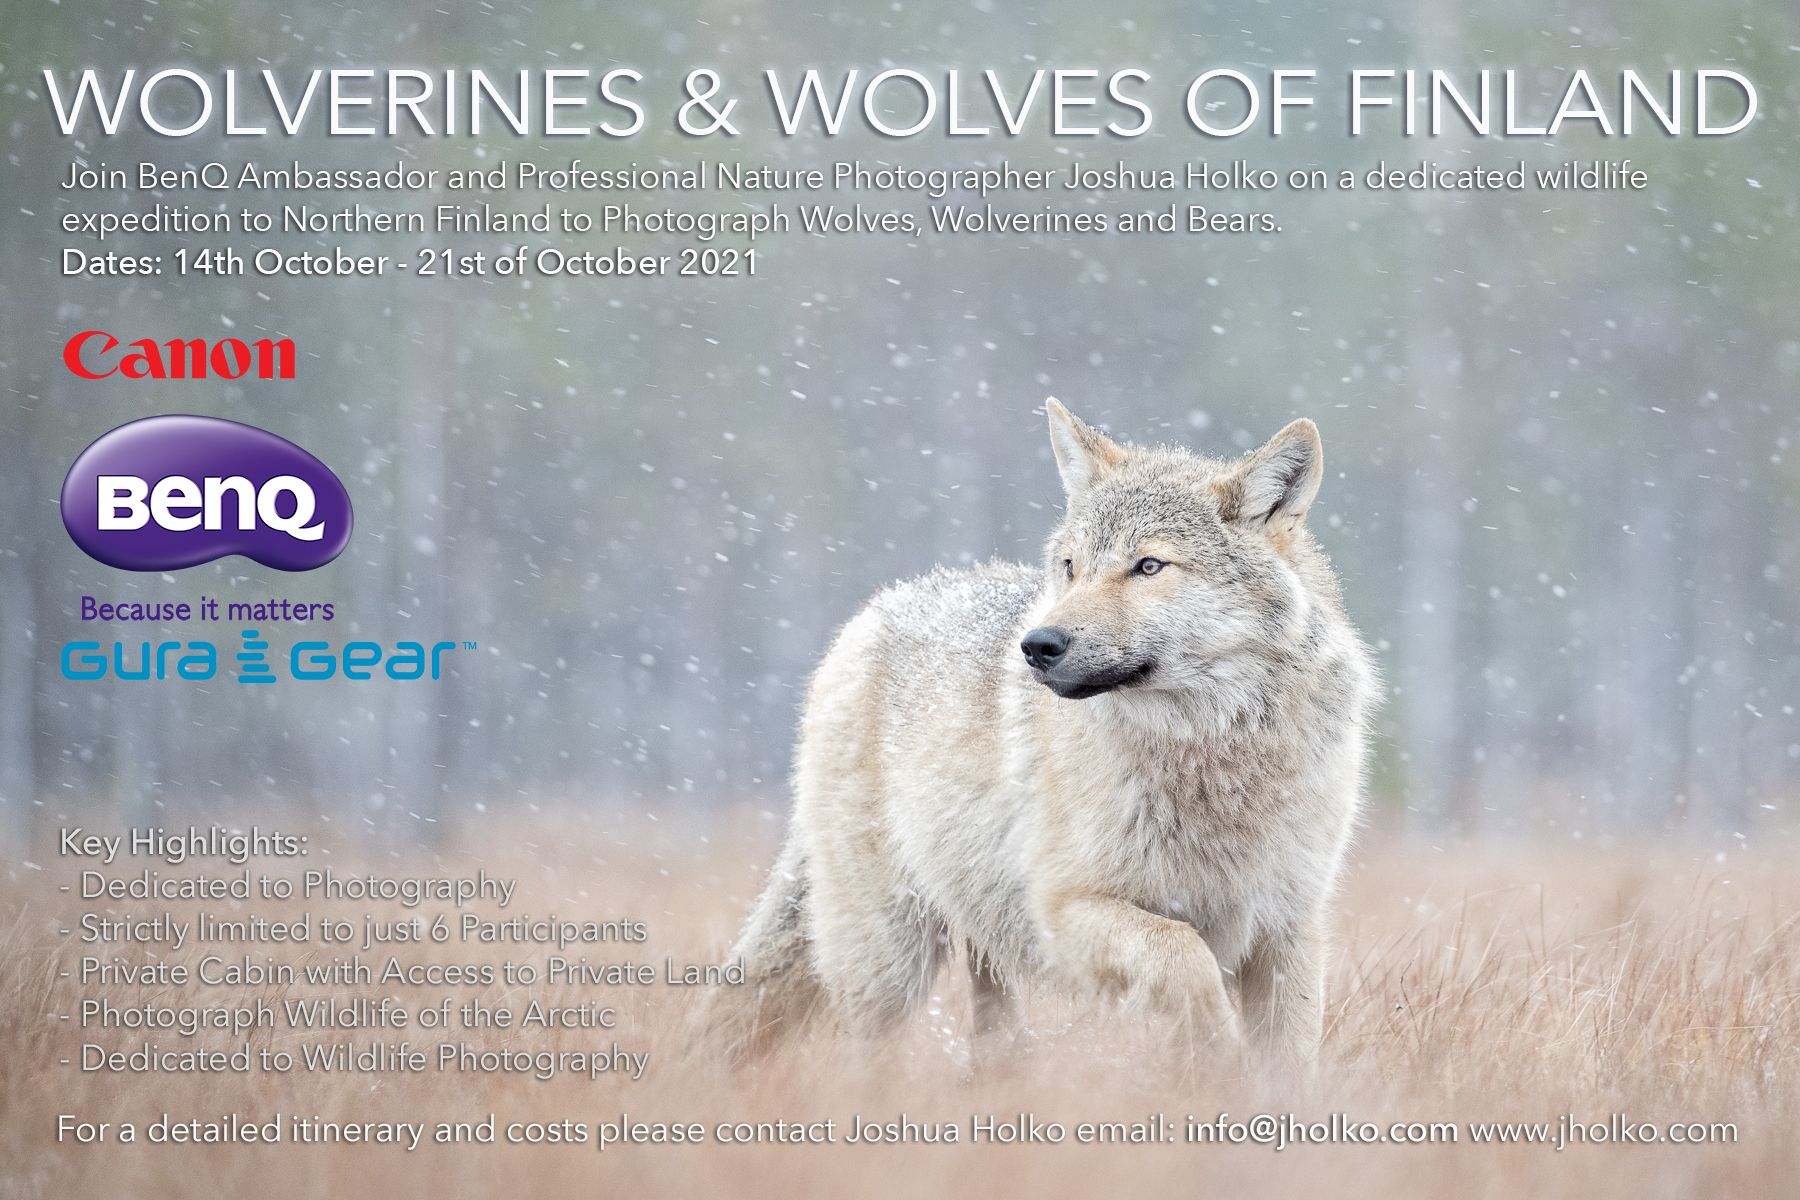 Wolverine and Wolves of Finland workshop with Joshua Holko